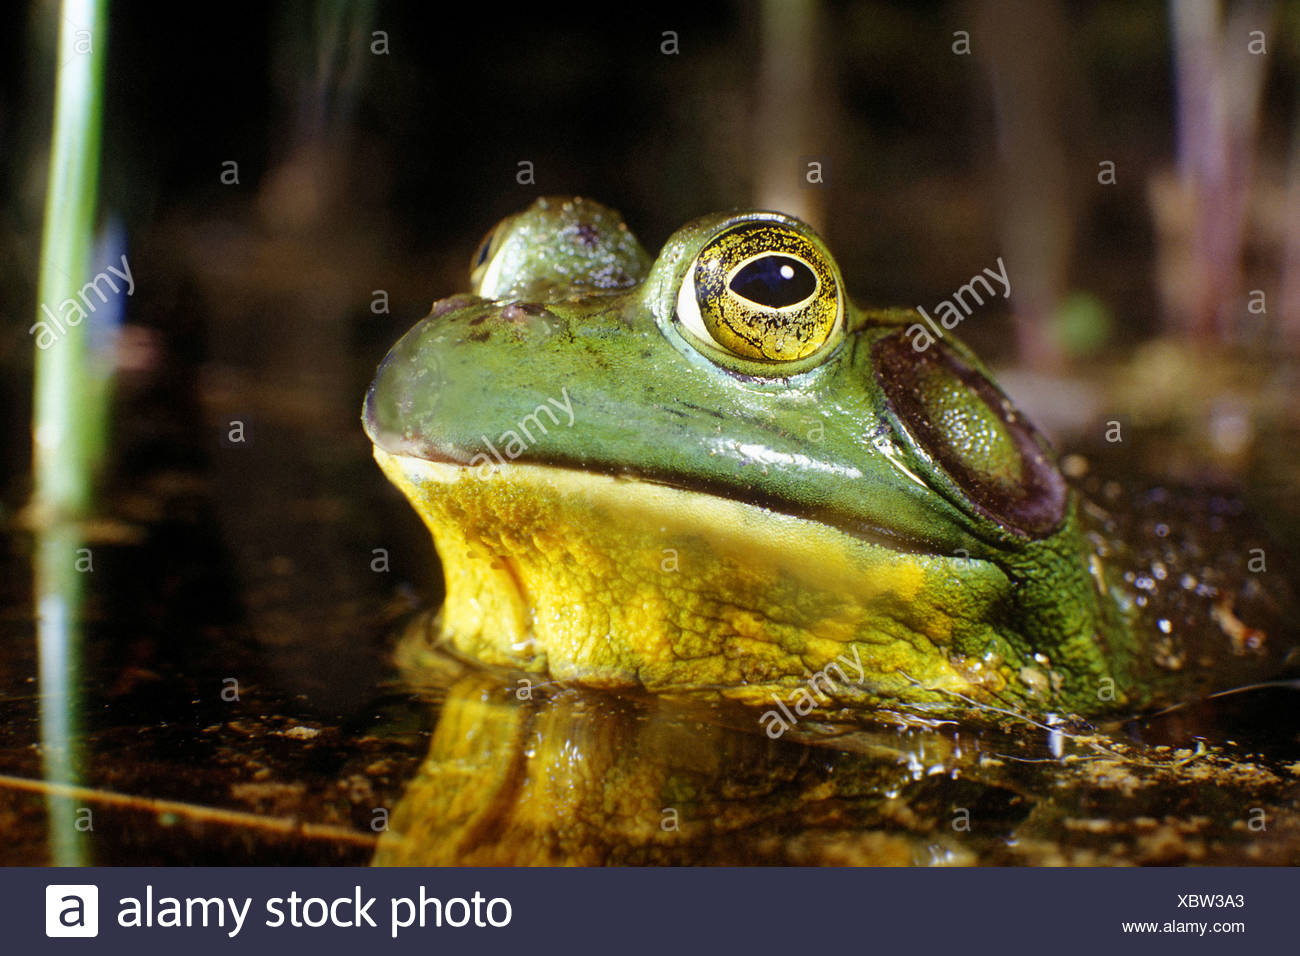 With eyes bulging, a bullfrog emerges from the depths of its kettle pond habitat in Cape Cod, Massachusetts. Stock Photo